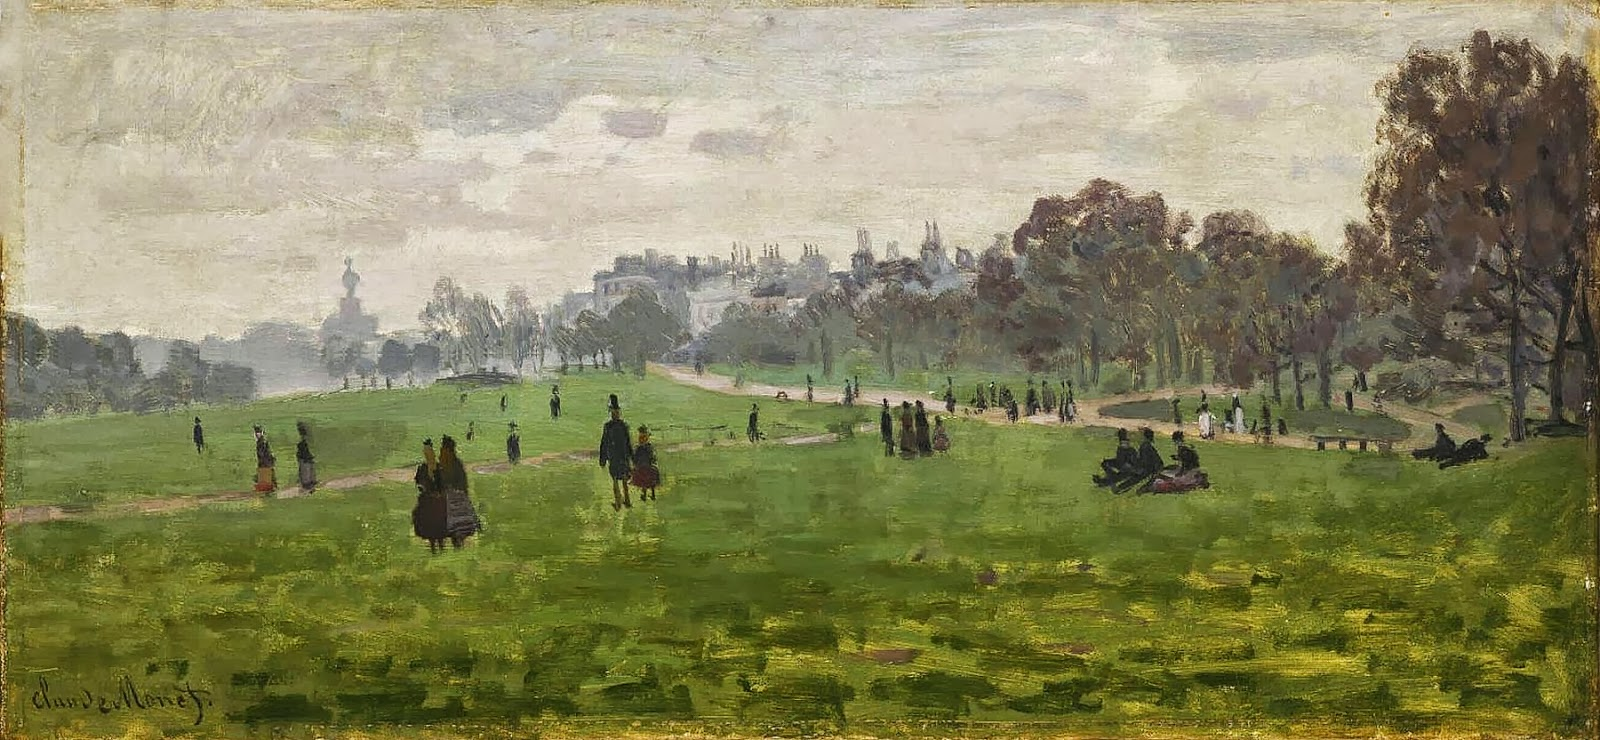 art artists claude monet part  claude monet 1871 green park oil on canvas 34 x 72 cm philadelphia museum of art pa